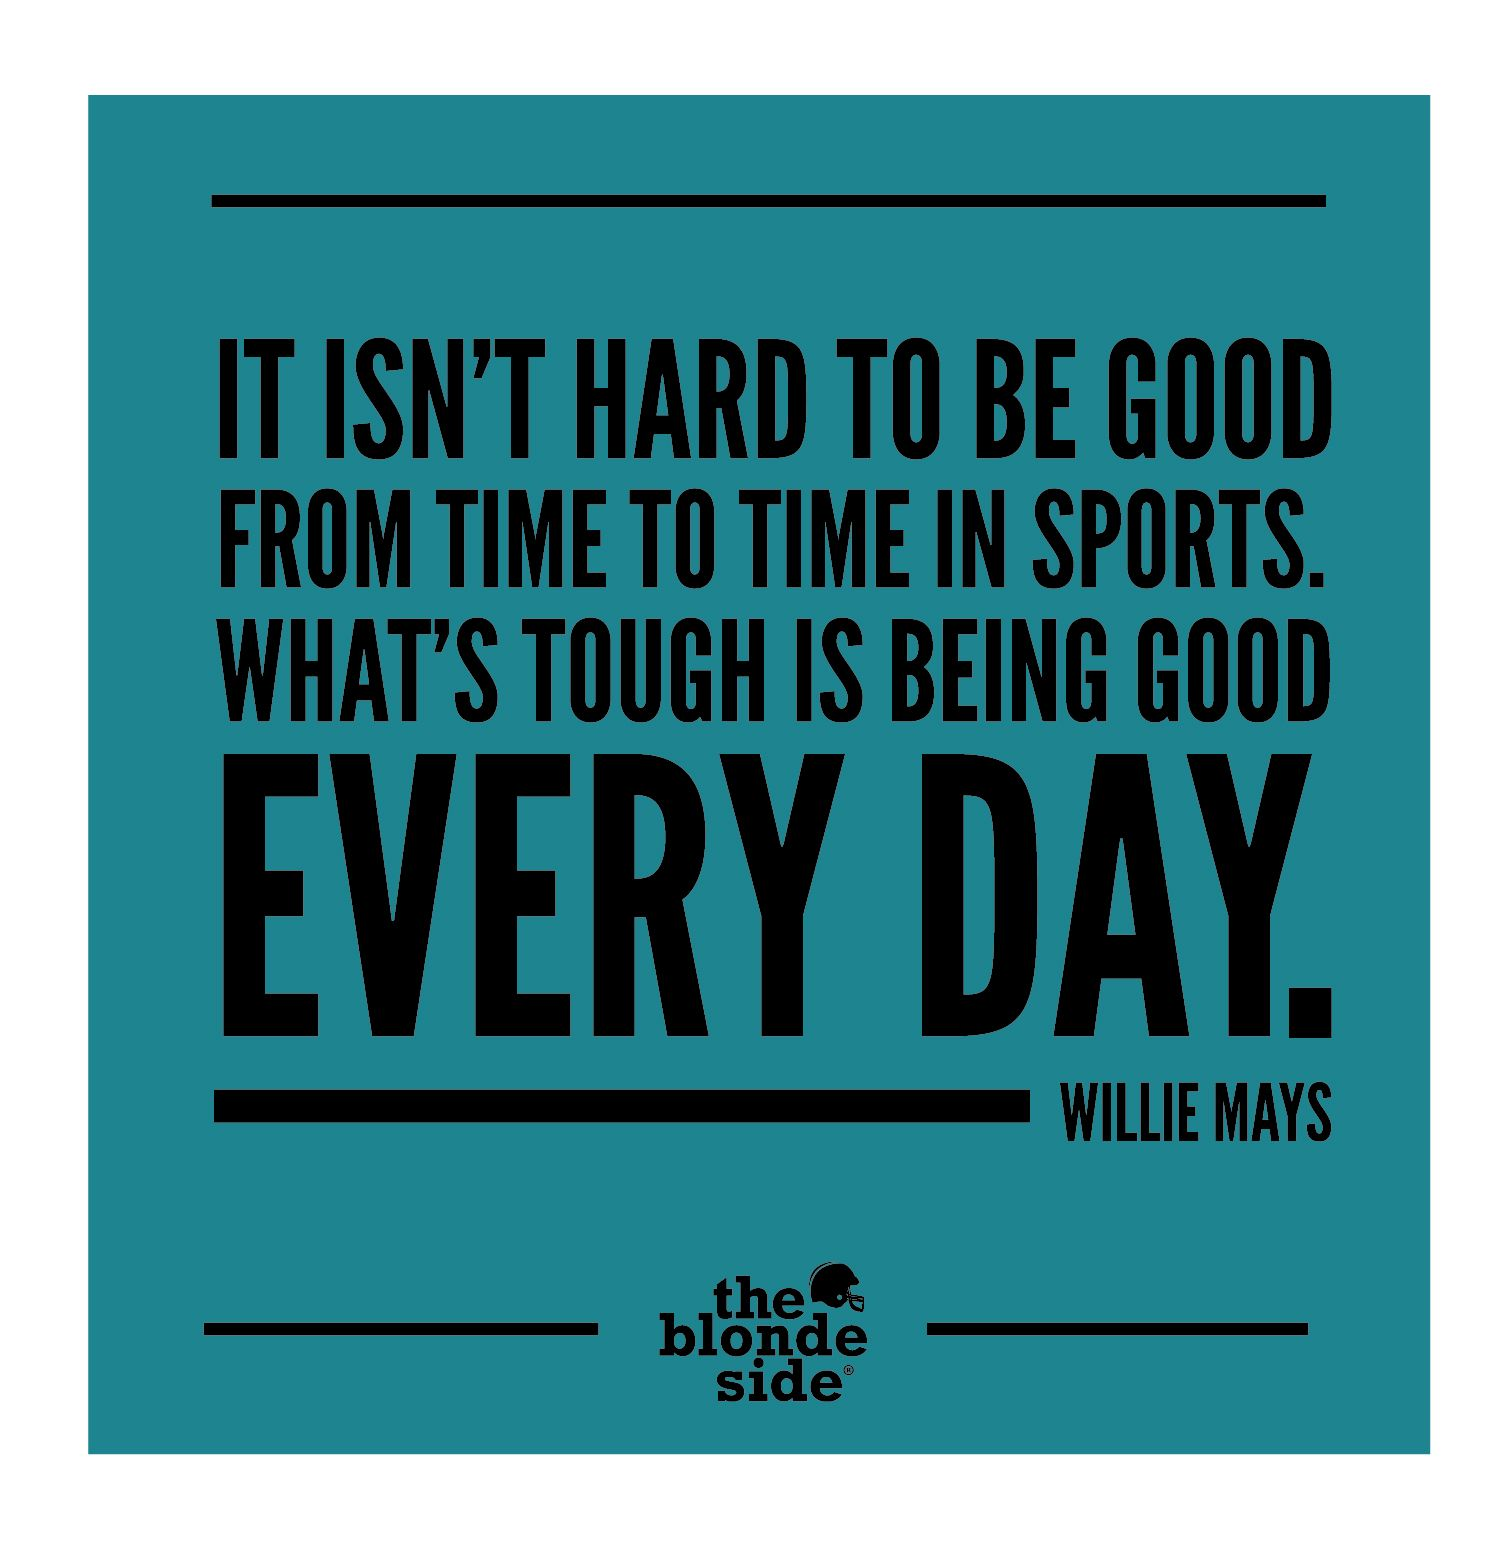 Good Baseball Quotes Willie Mays Sports Quotes  Theblondeside  The Blonde Side